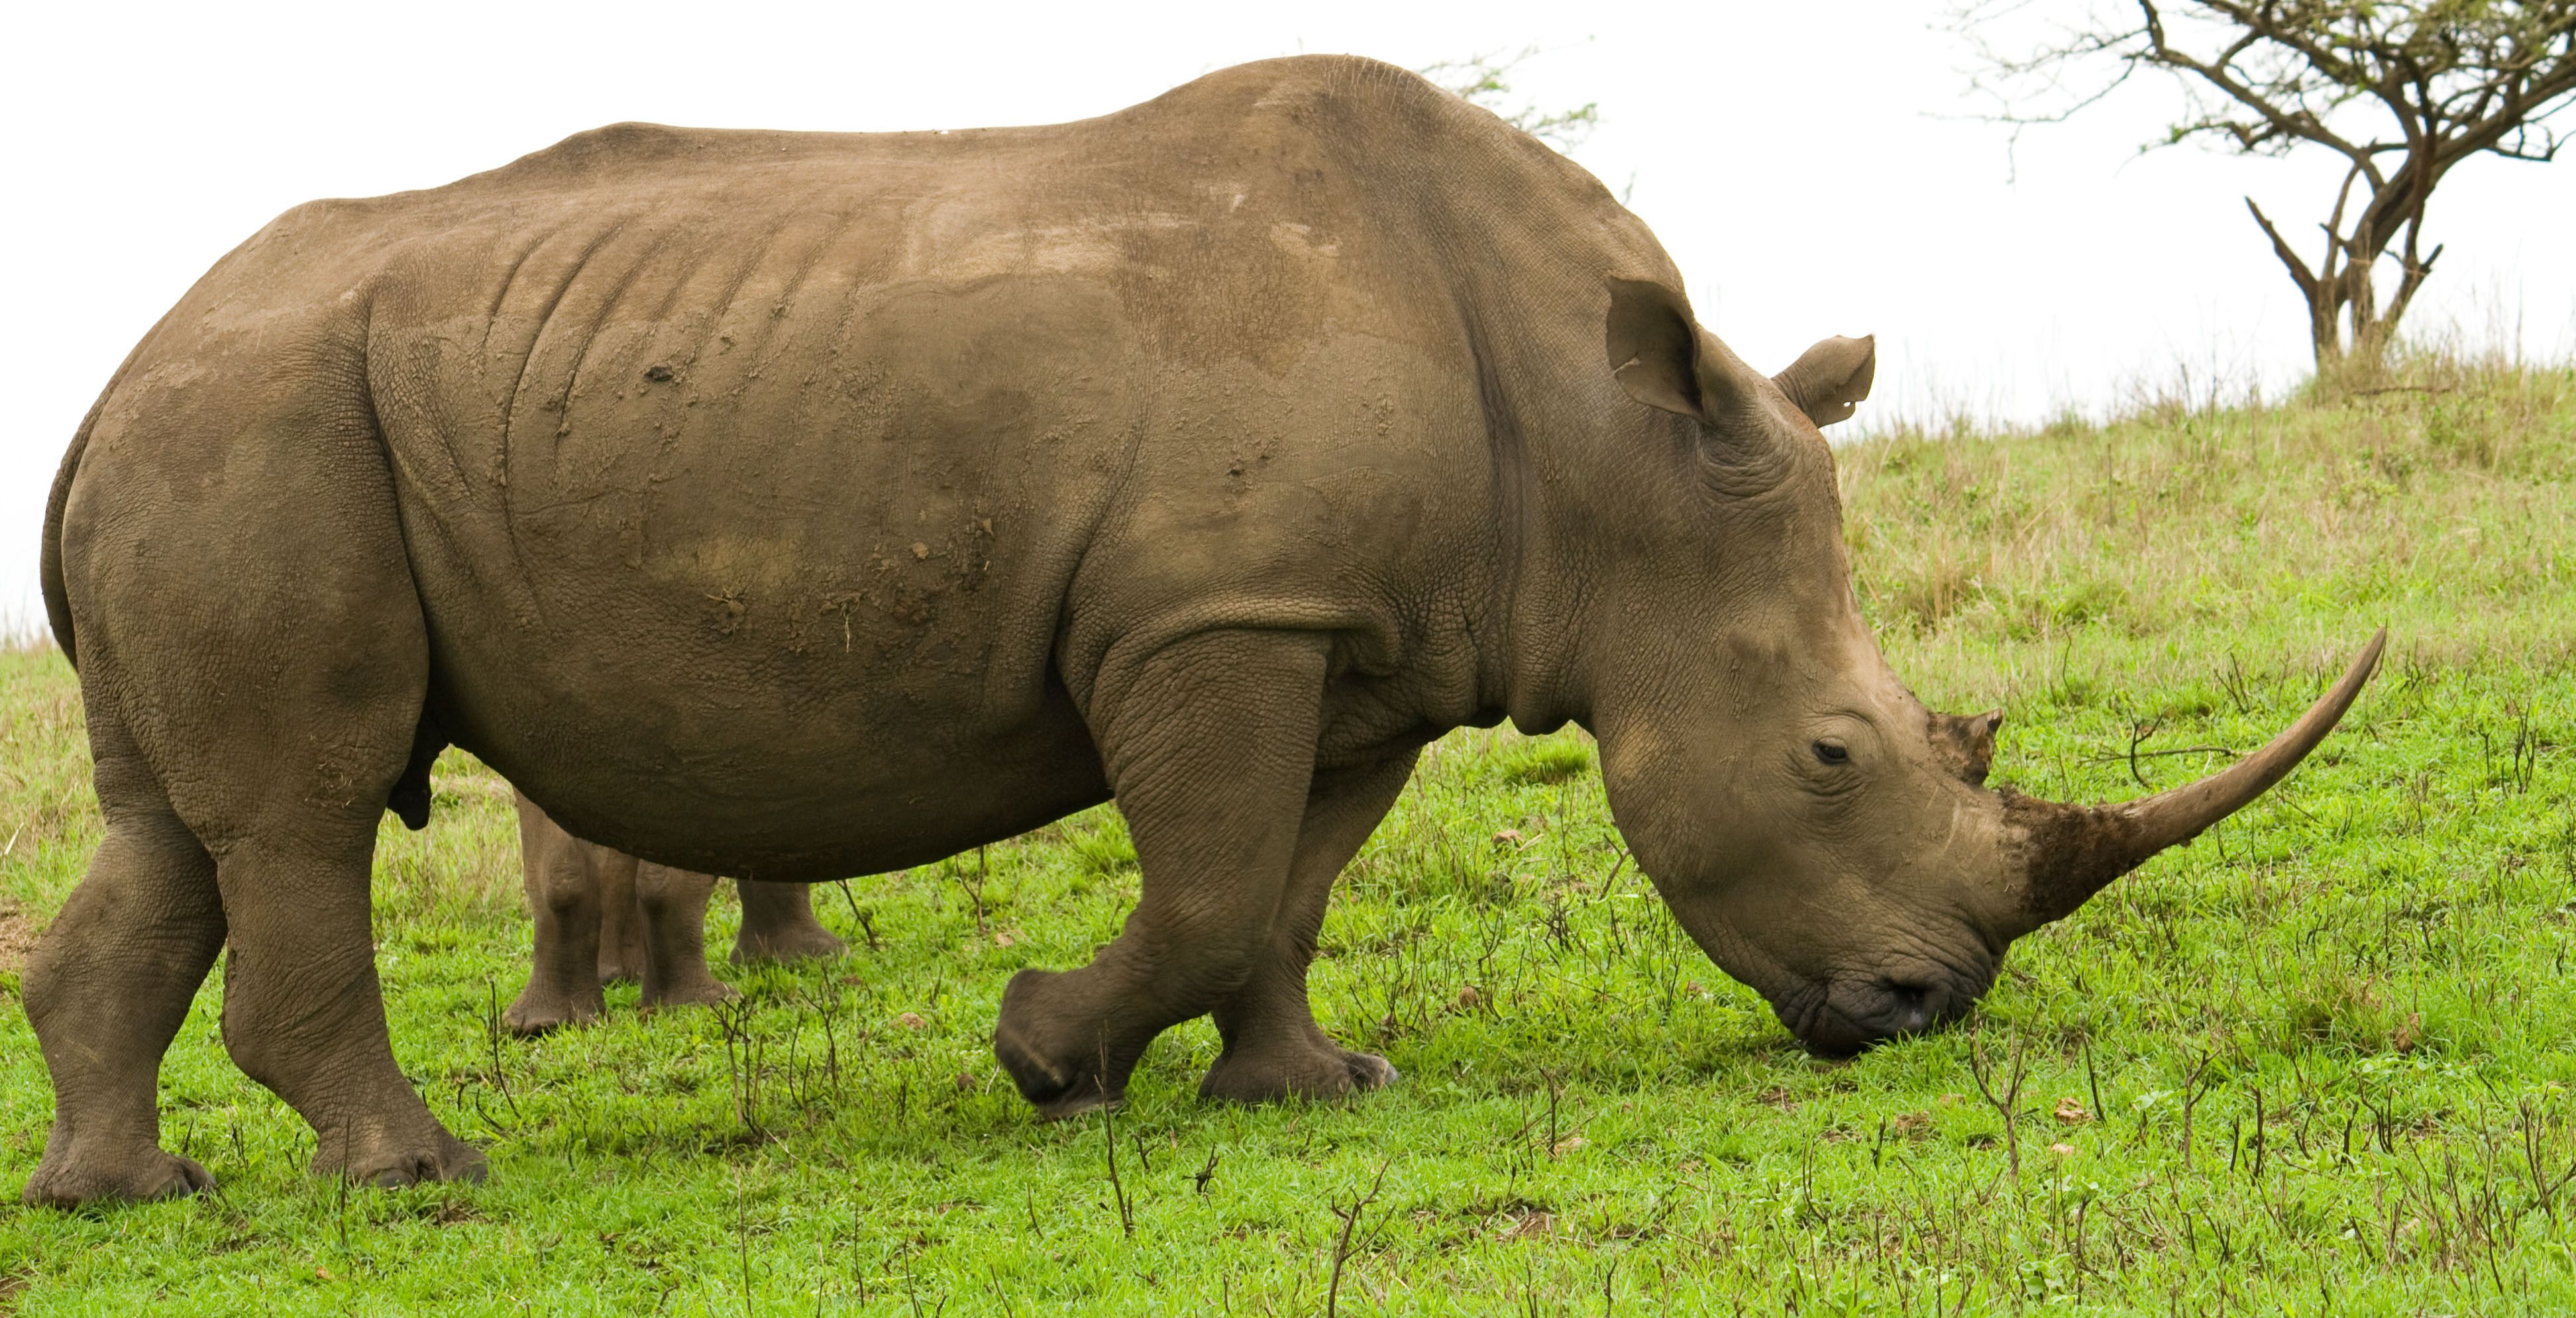 Rhinoceroses Are Large Herbivorous Mammals Identified By Their Characteristic Horned Snouts The Word Rhinoceros Herbivorous Animals Animals African Wildlife